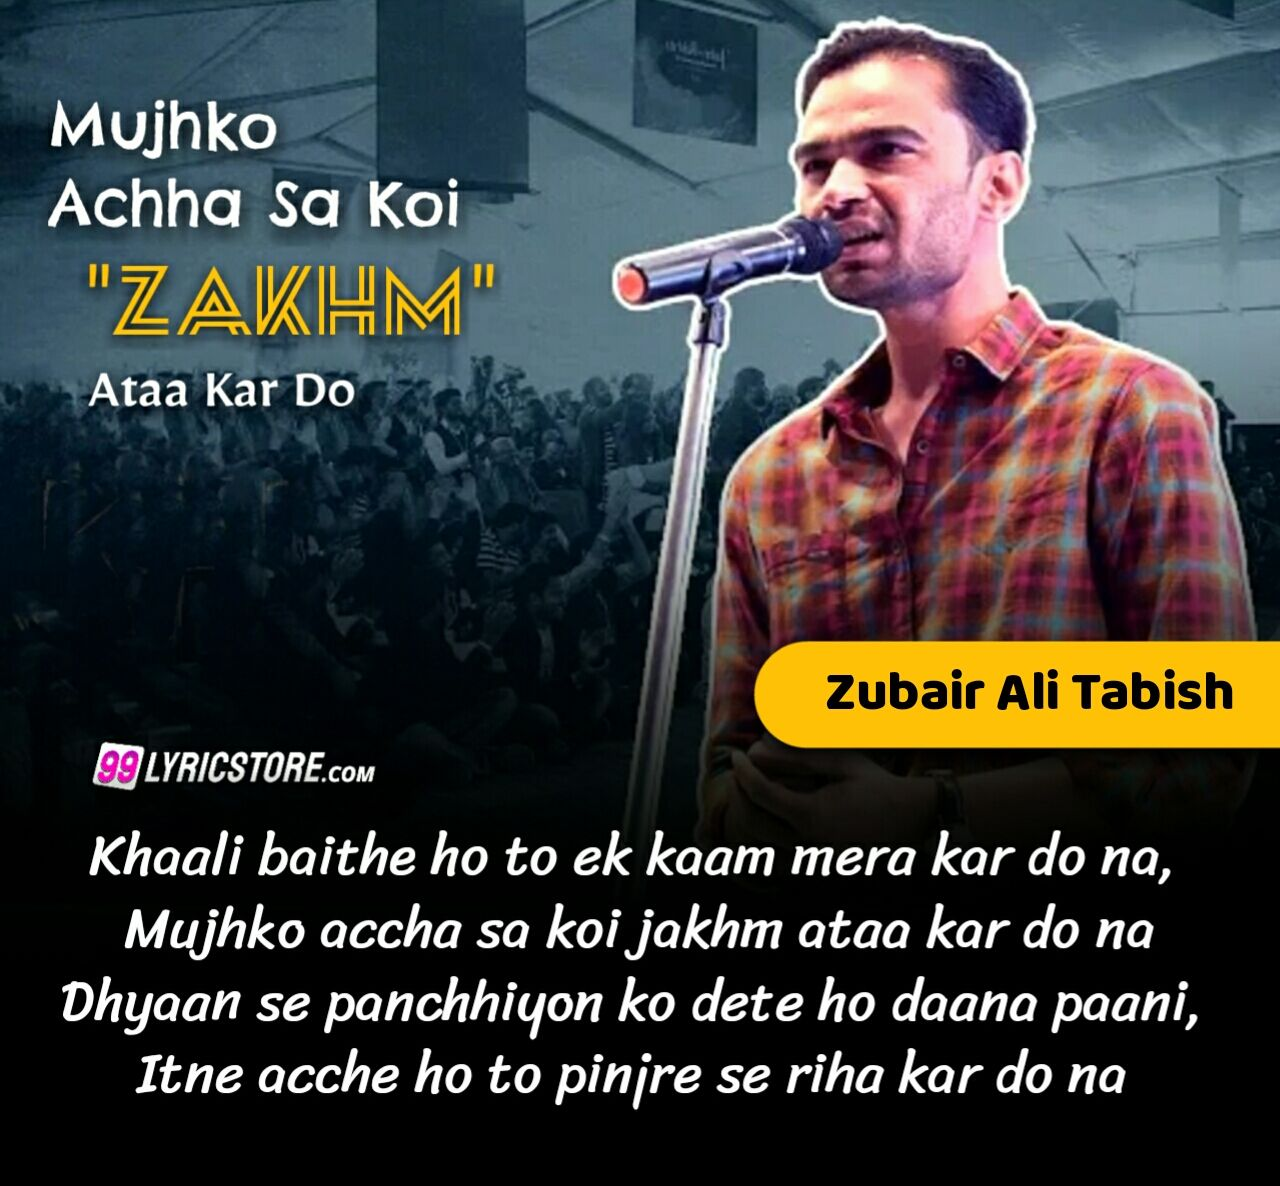 Mujh Ko Accha Sa Koi Zakhm Aata Kar Do Lyrics Performance By Zubair Ali Tabish